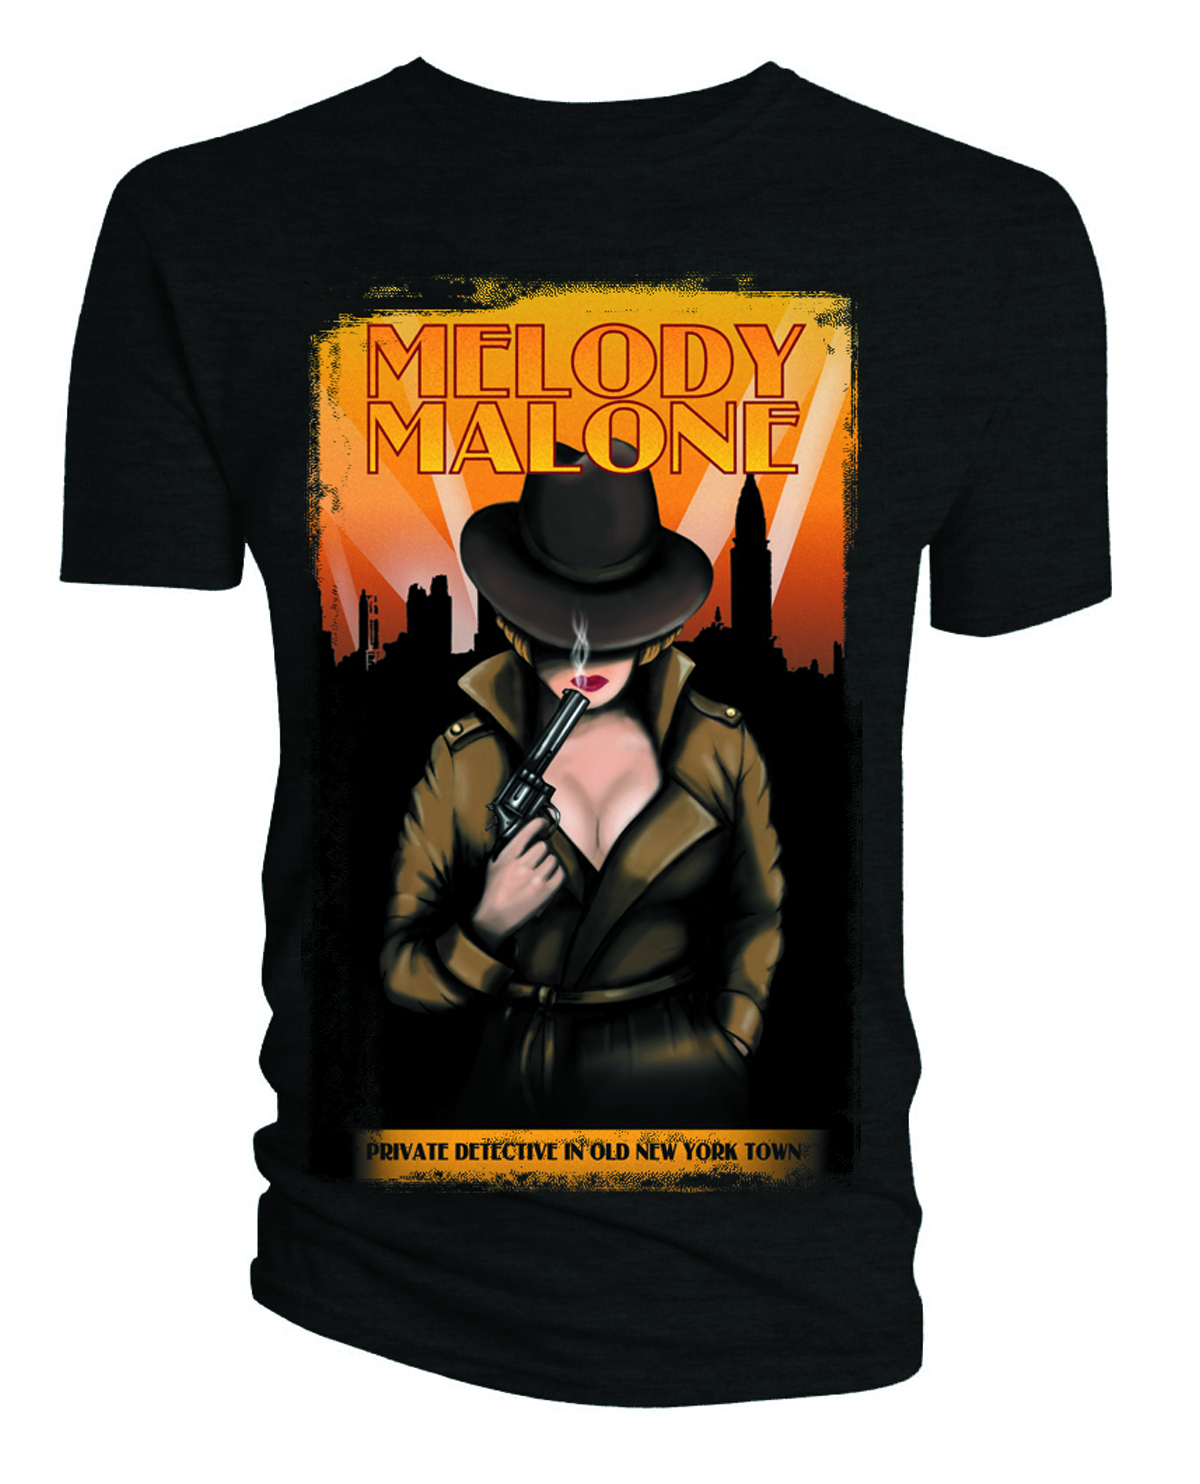 DOCTOR WHO MELODY MALONE BLK T/S XL